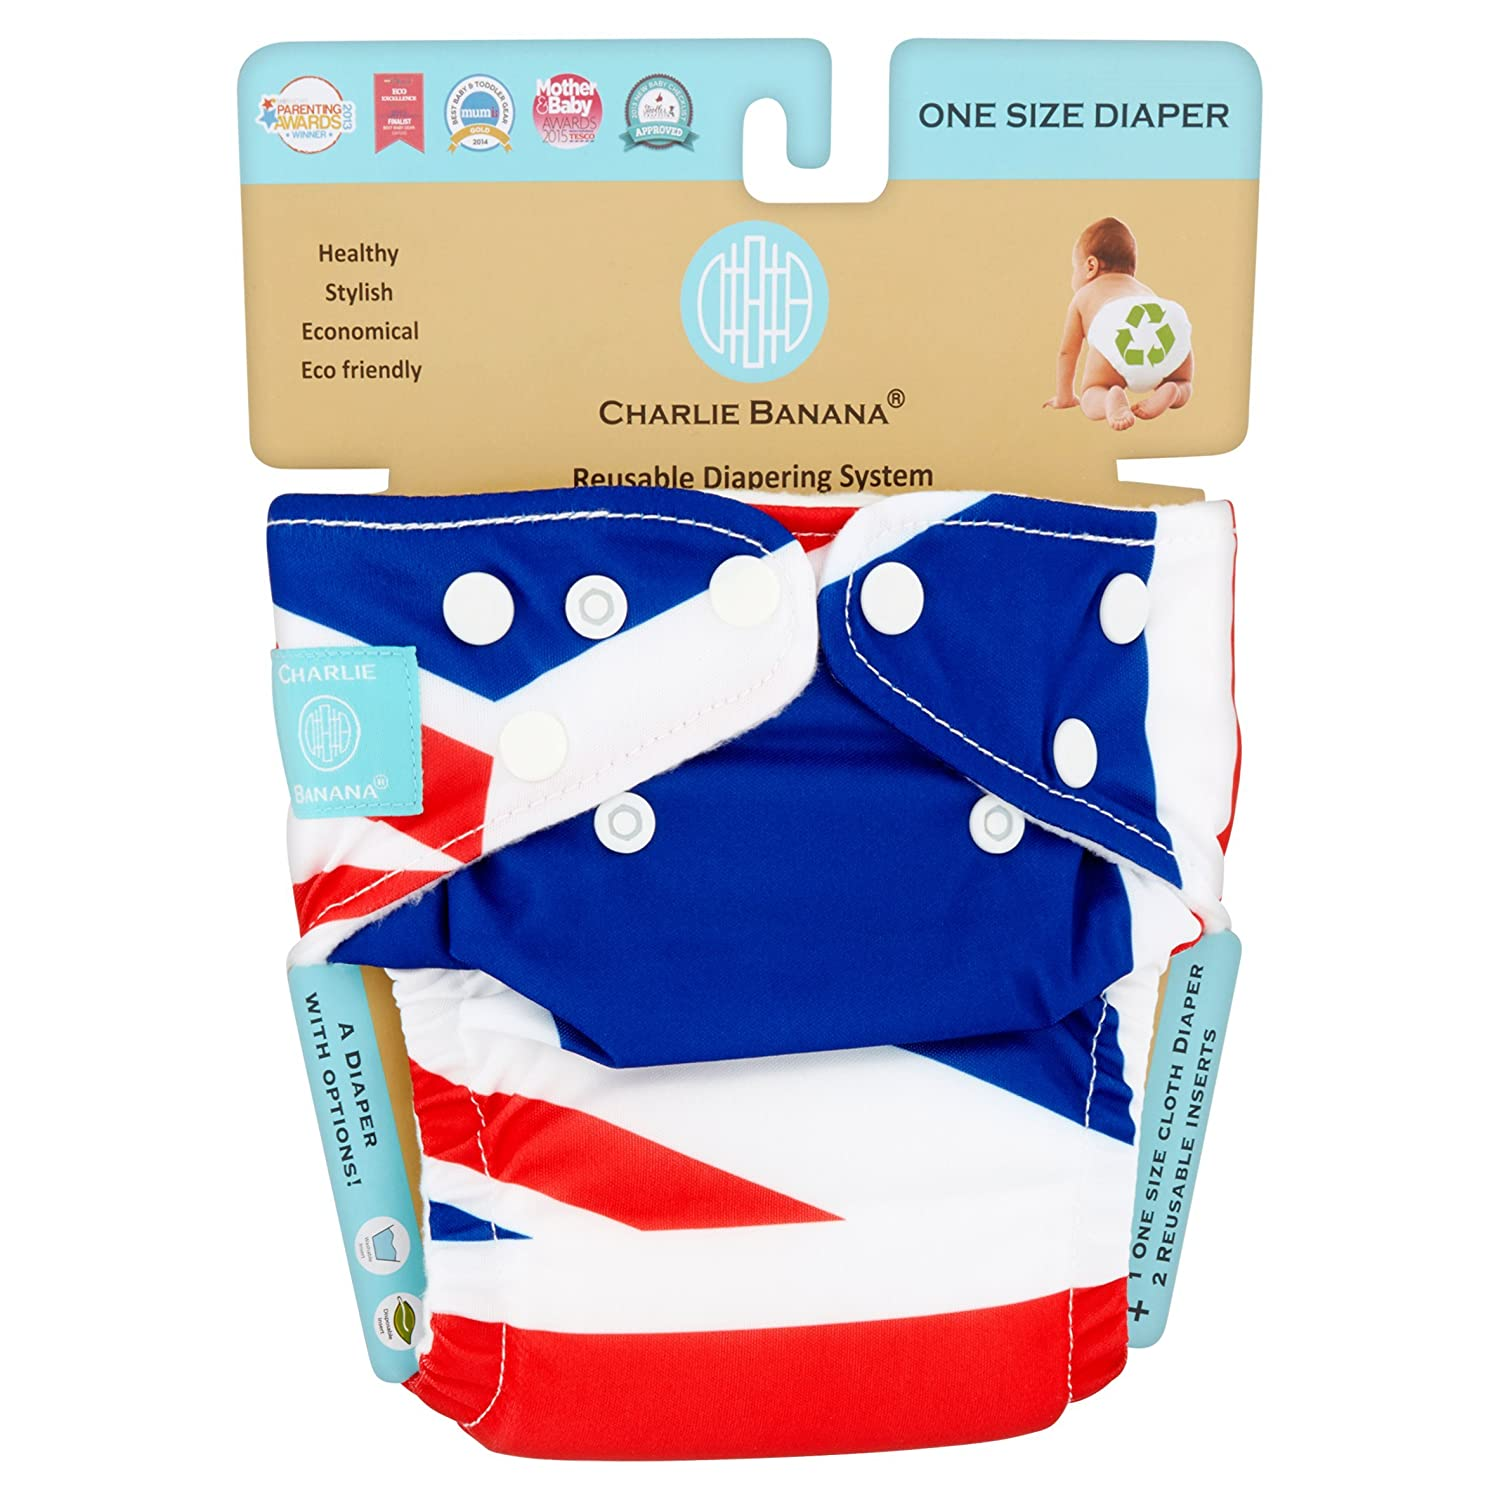 Amazon.com: Branded Charlie Banana One Size Diaper , - Branded Diapers with fast delivery (Soft and Comfortable for Babies): Health & Personal Care